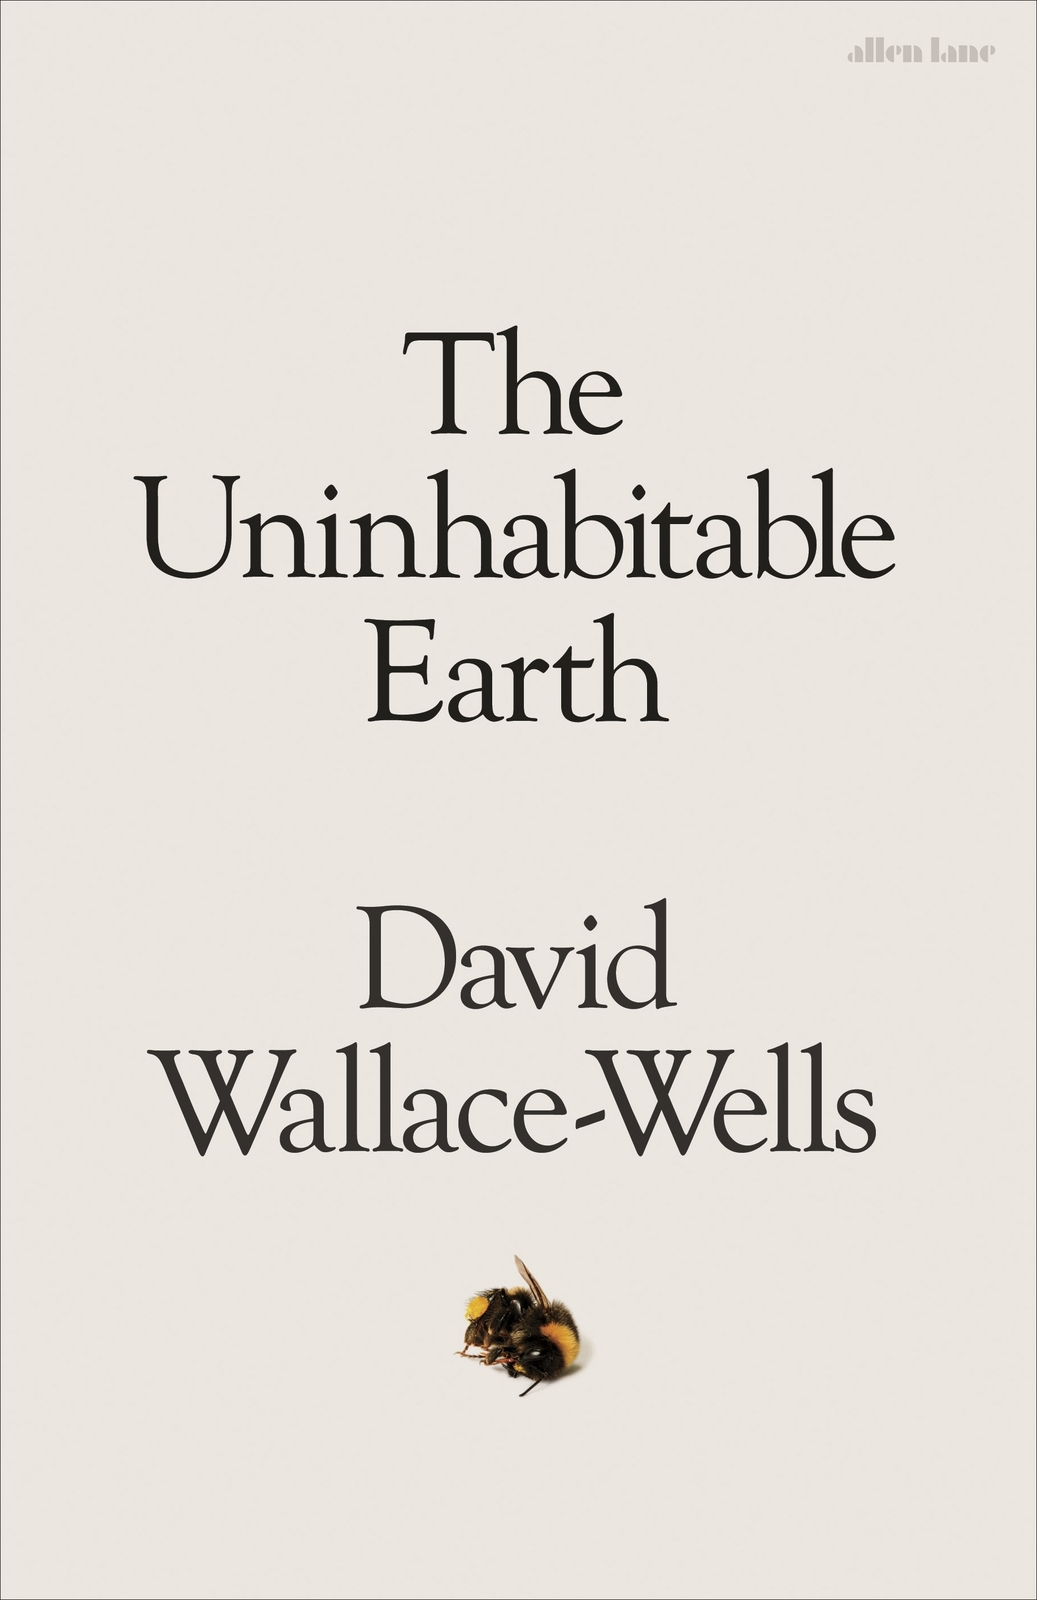 The Uninhabitable Earth by David Wallace-Wells image